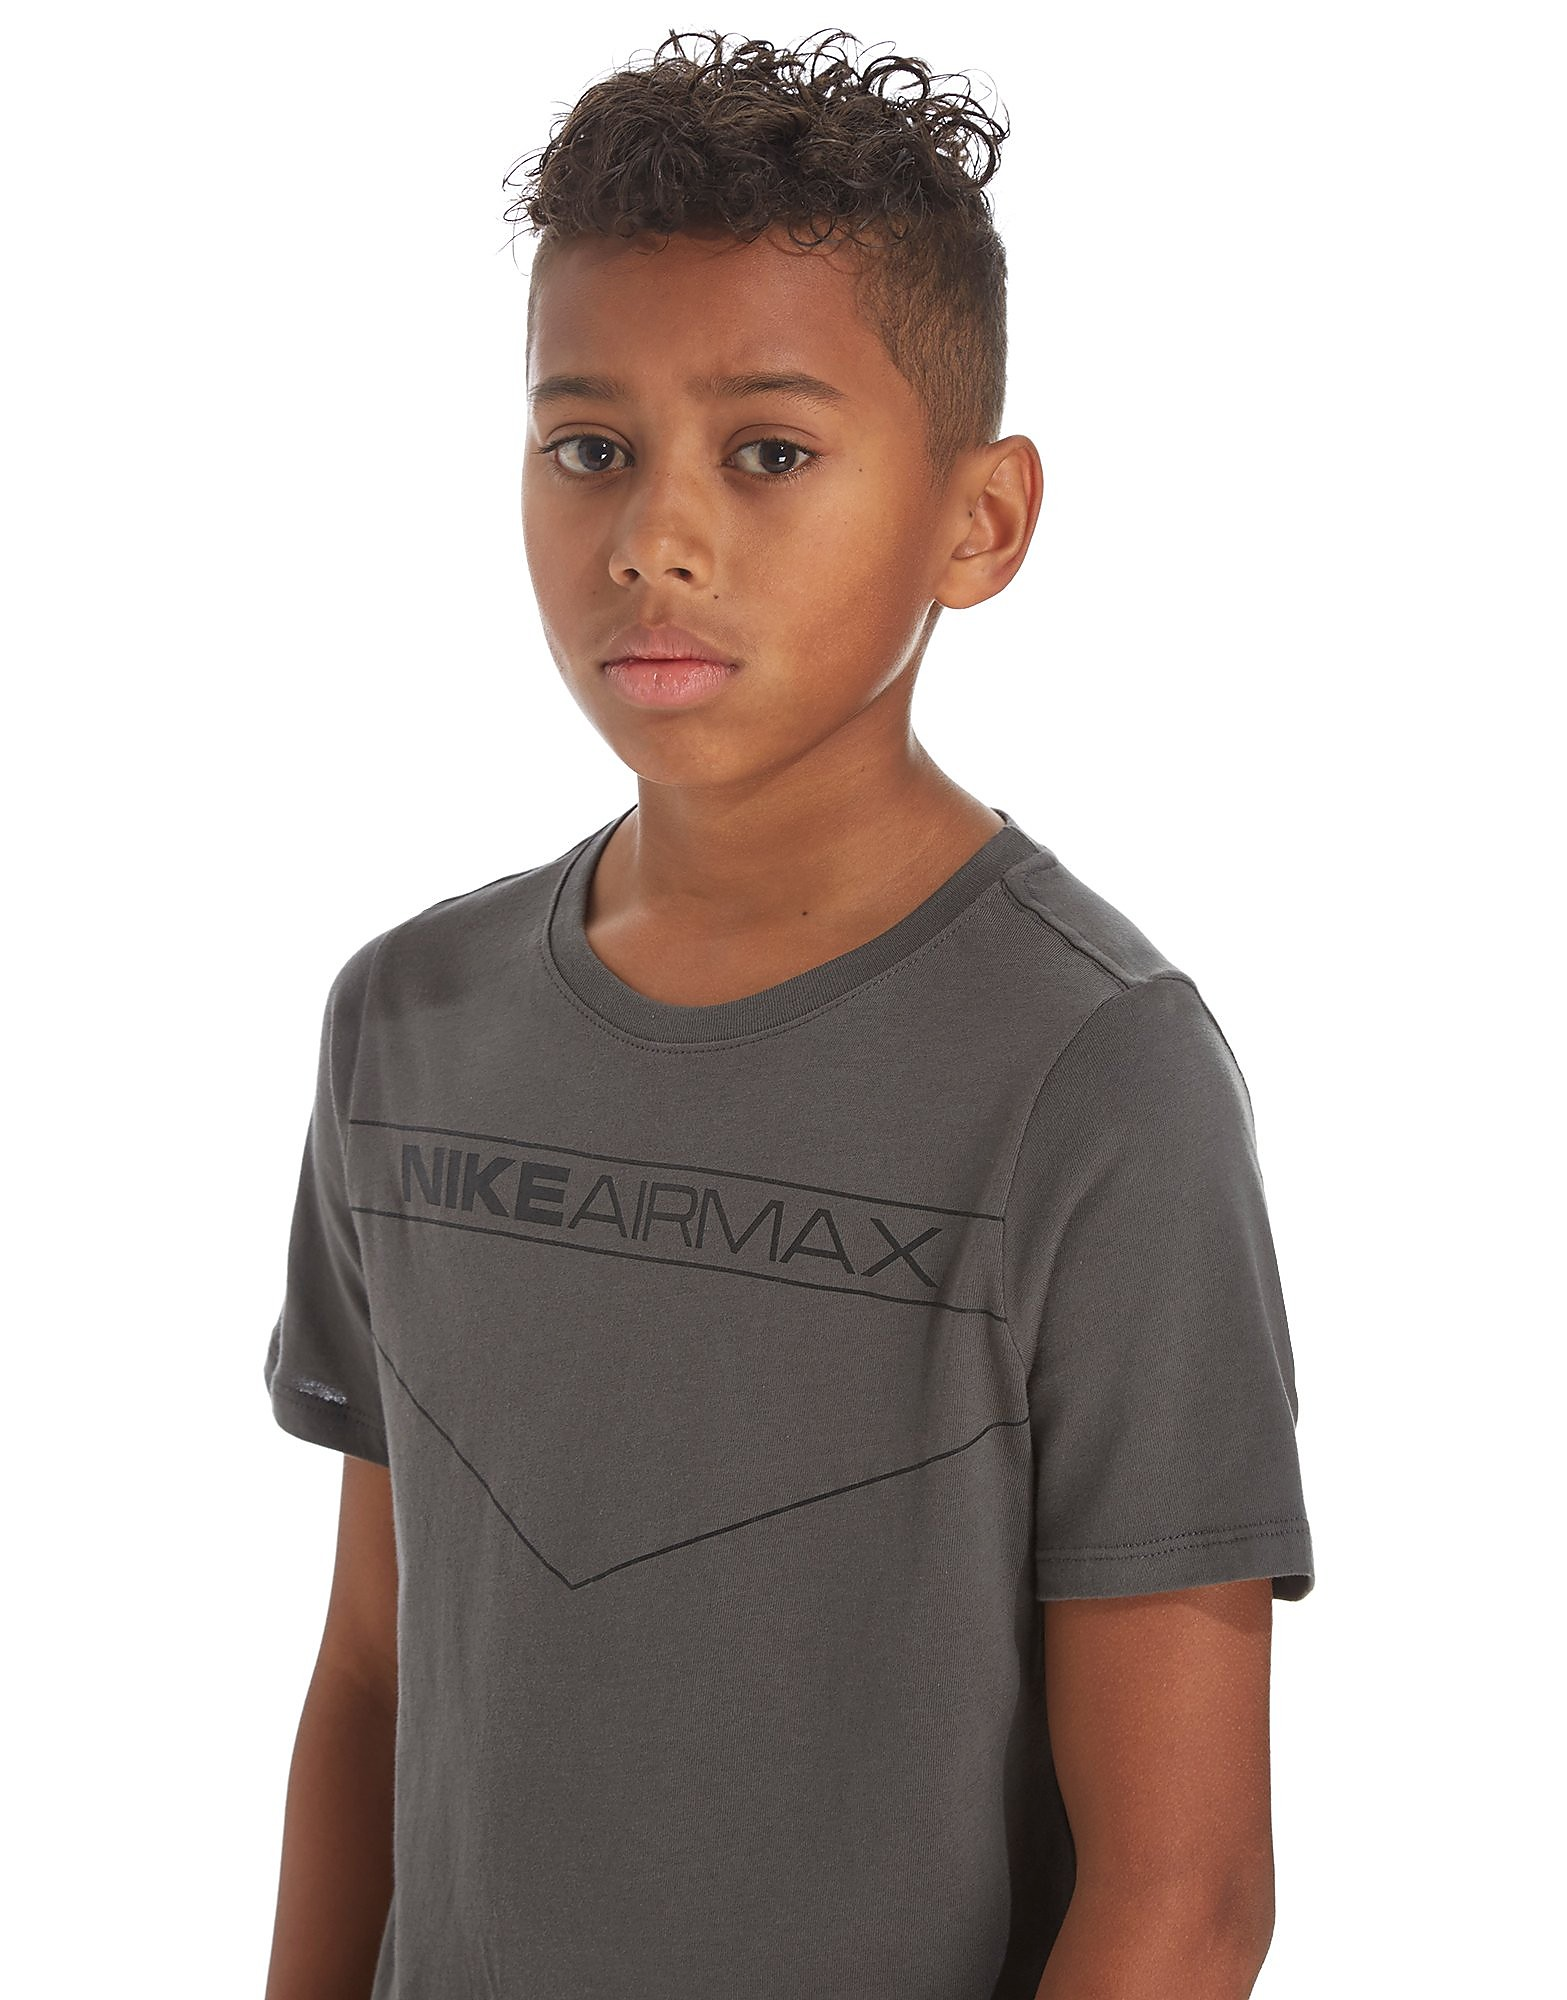 Nike Air Max Chevron T-Shirt Junior